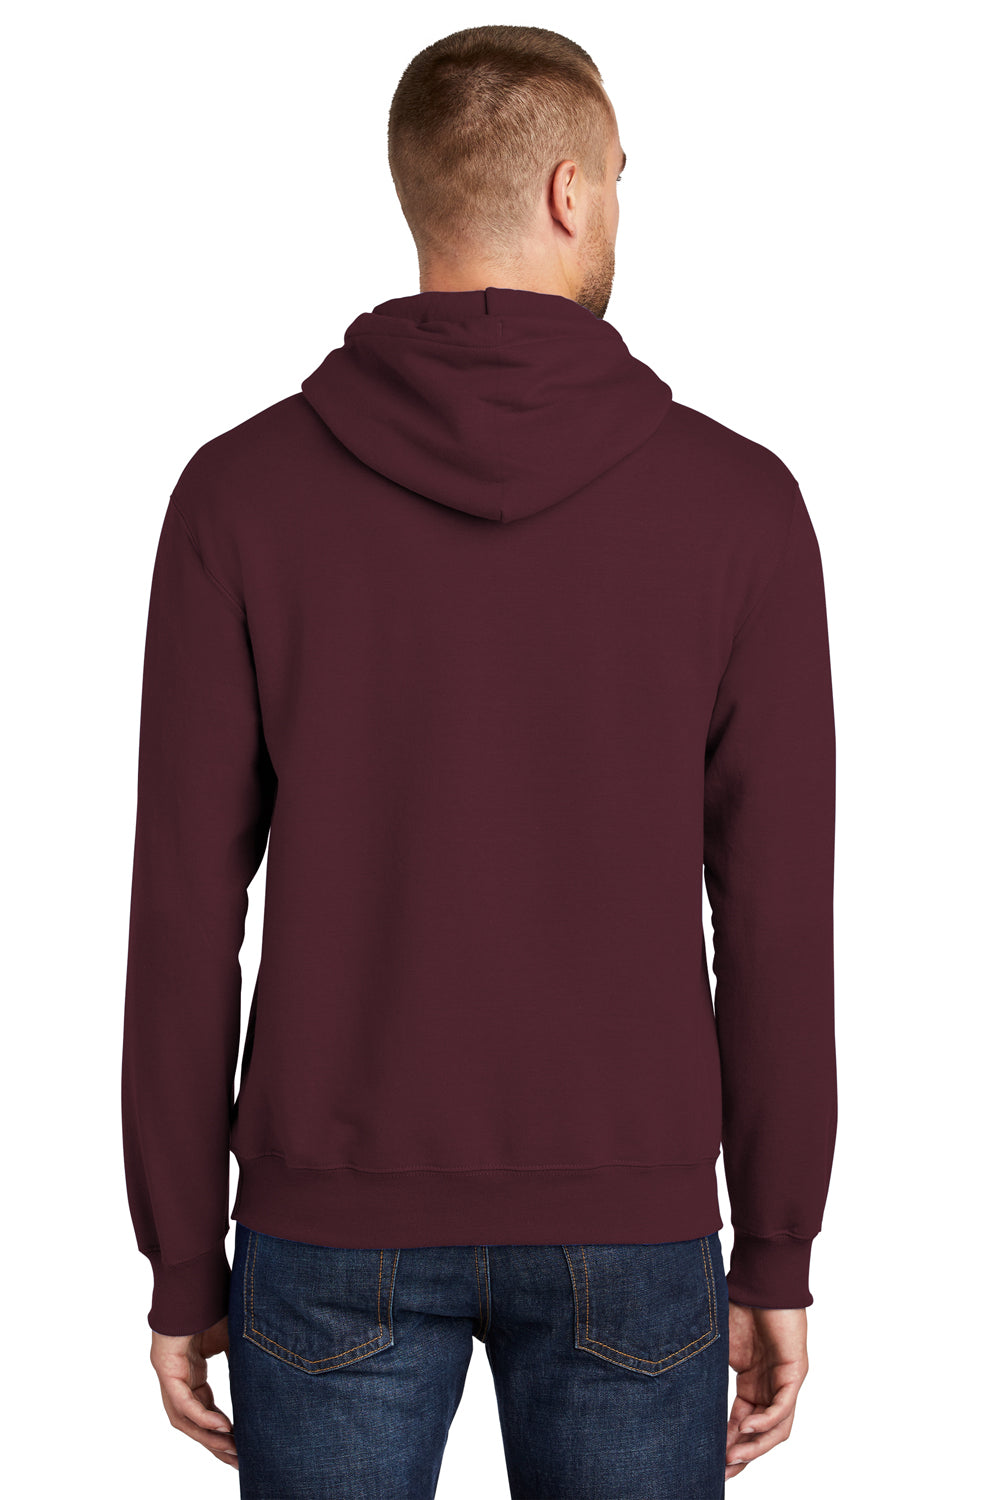 Port & Company PC90H Mens Essential Fleece Hooded Sweatshirt Hoodie Maroon Side